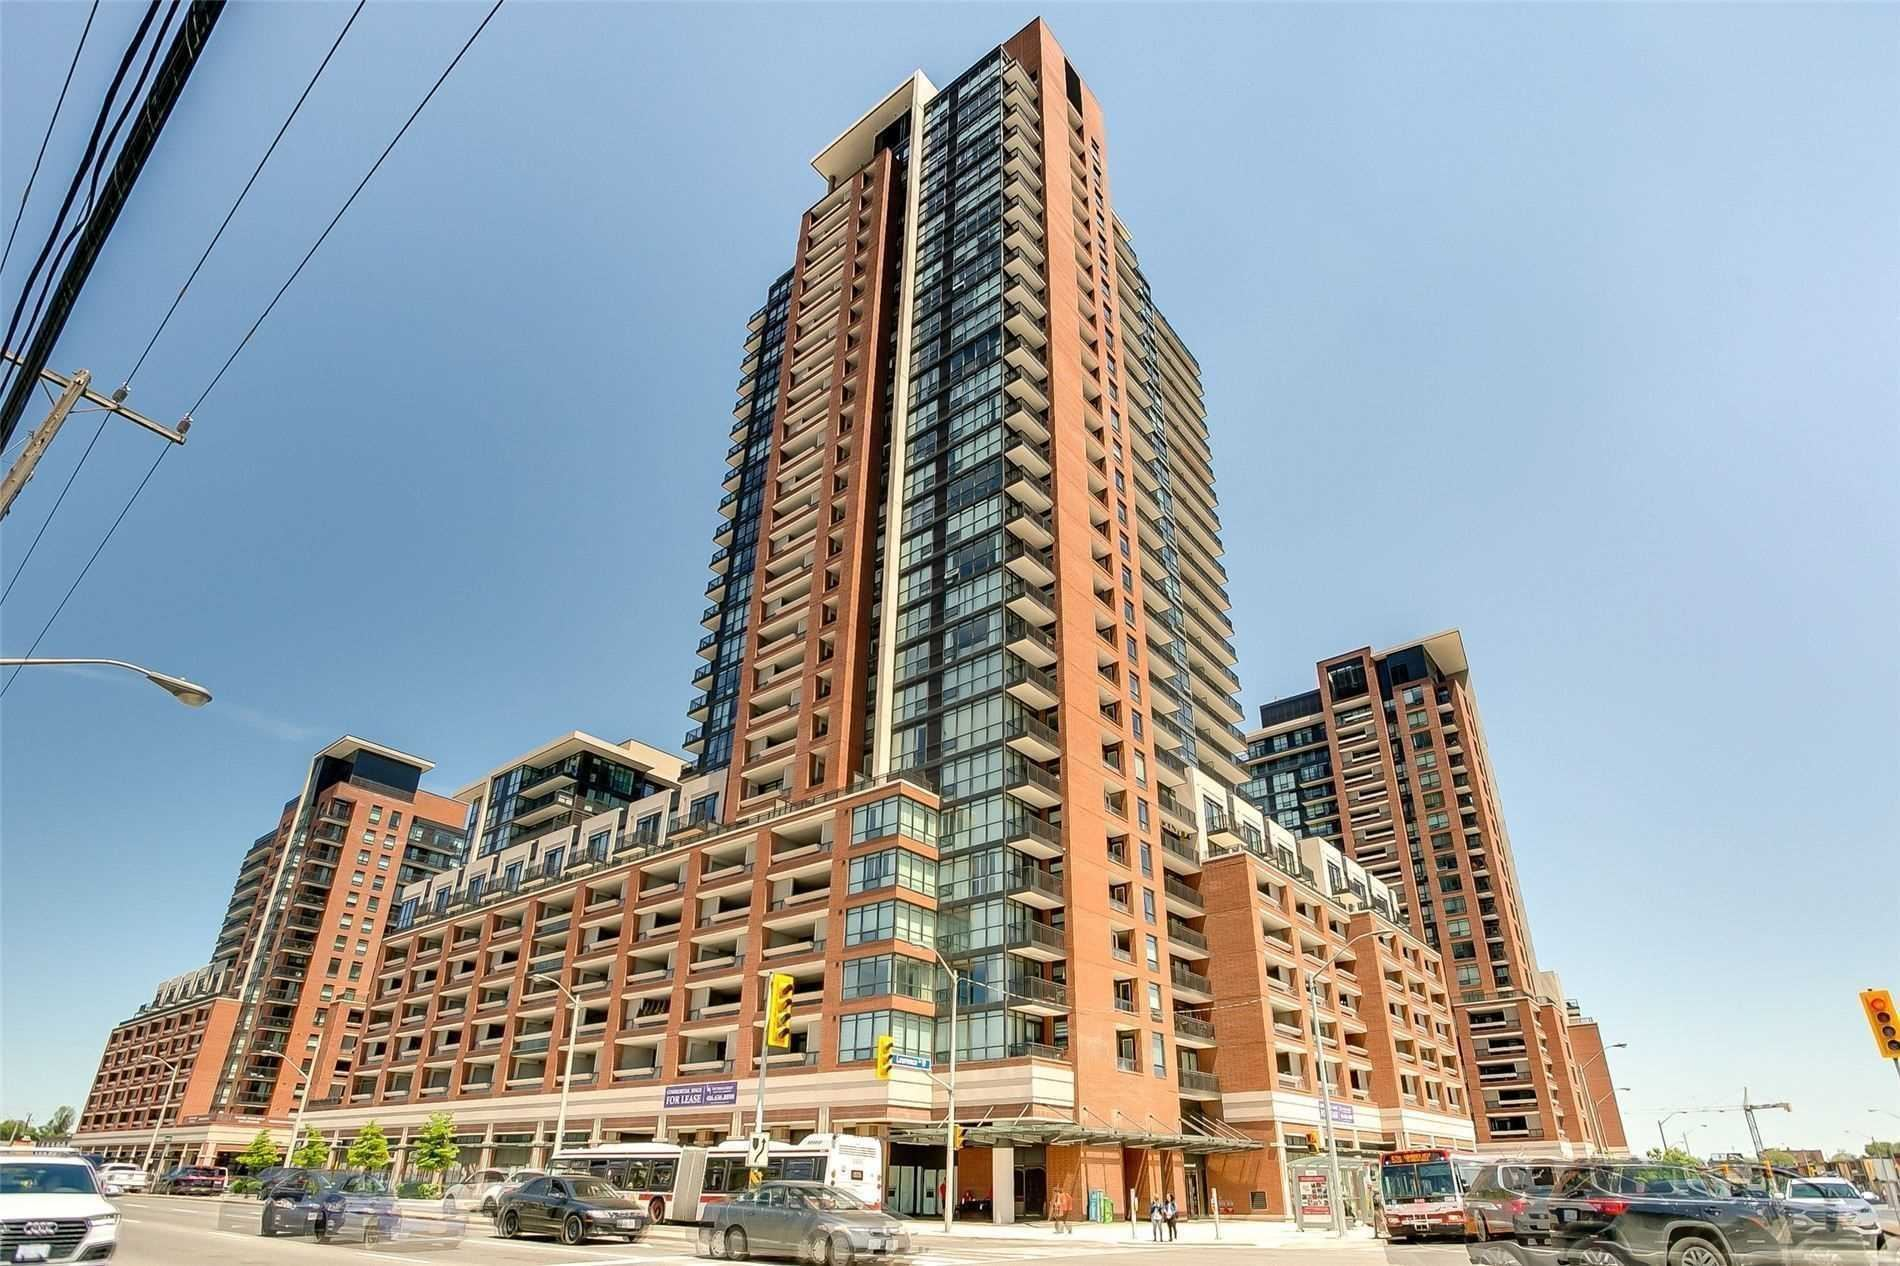 830 Lawrence Ave W #1906, Toronto, ON M6A1C3 - MLS#: W5388911